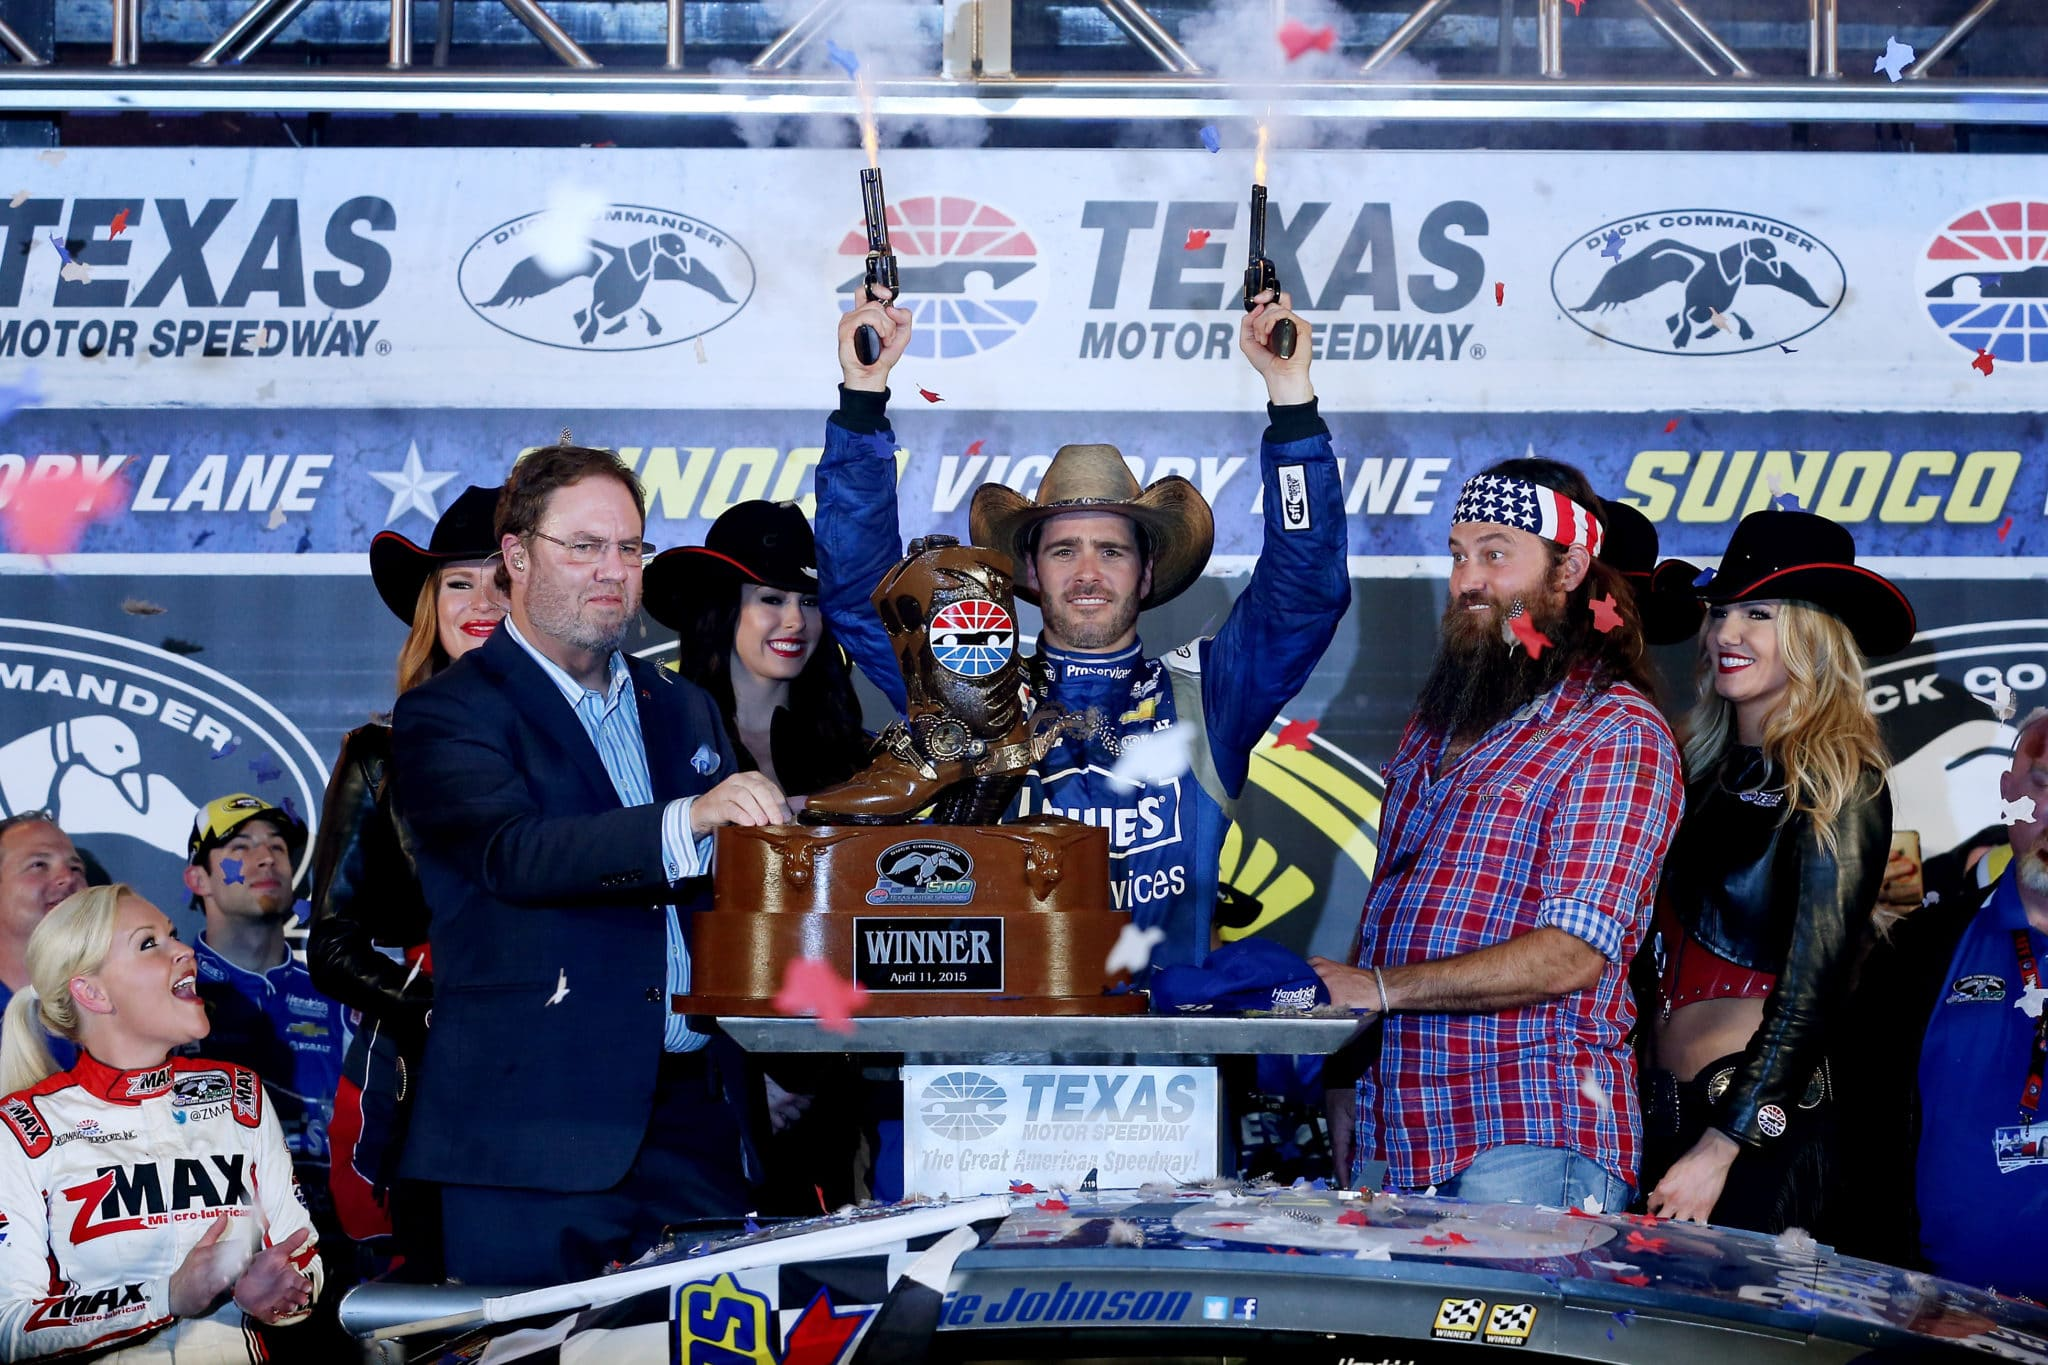 2015 Texas I CUP Jimmie Johnson six guns credit NASCAR via Getty Images